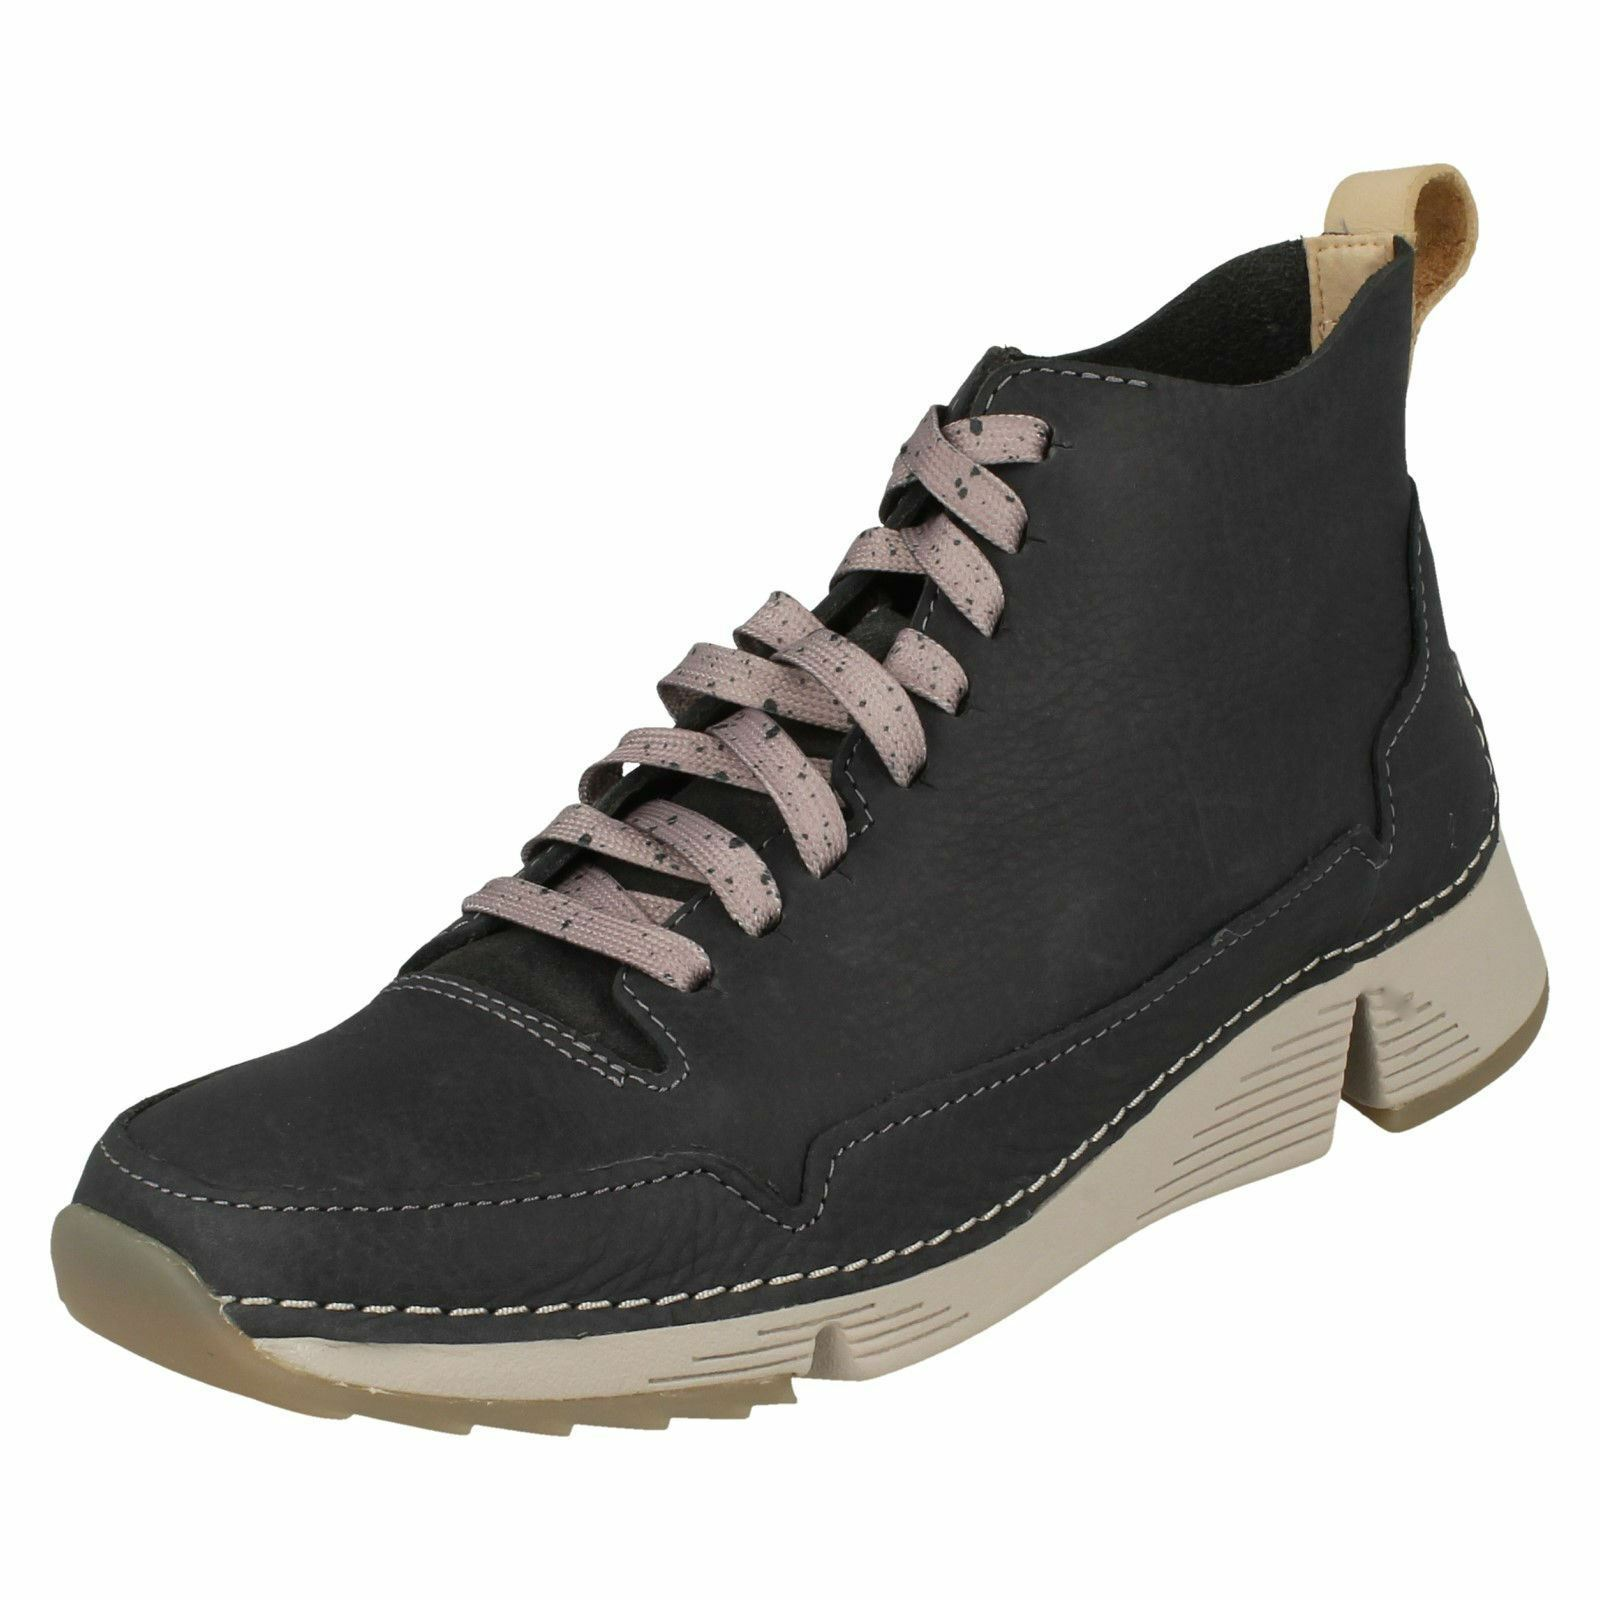 Ladies Clarks Lace Up Sporty Ankle Boot - Tri Free